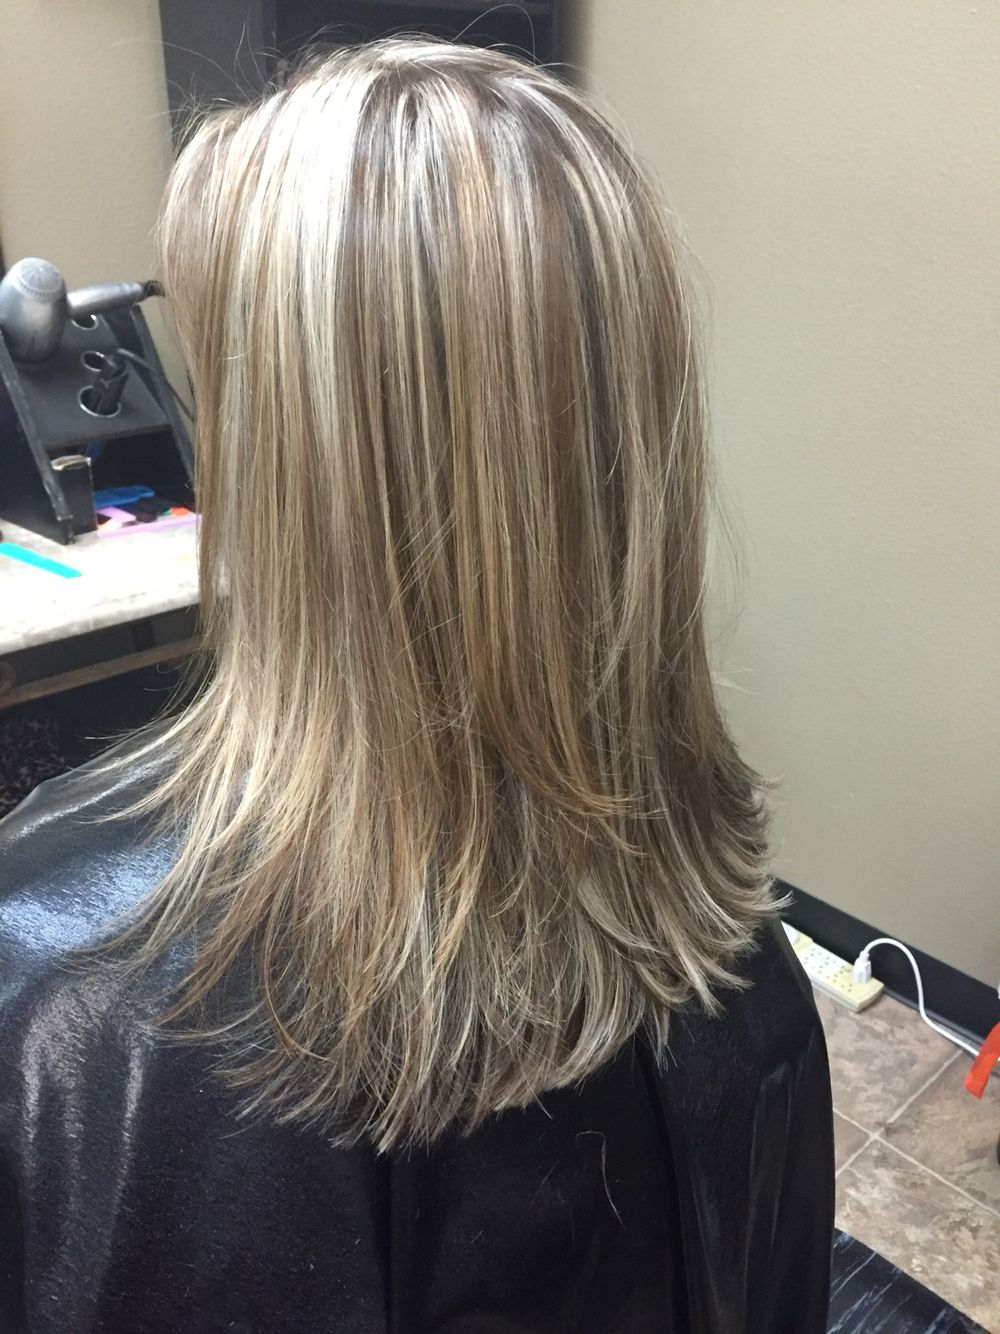 Blonde Highlights With Neutral Brown Lowlights For Contrast Medium